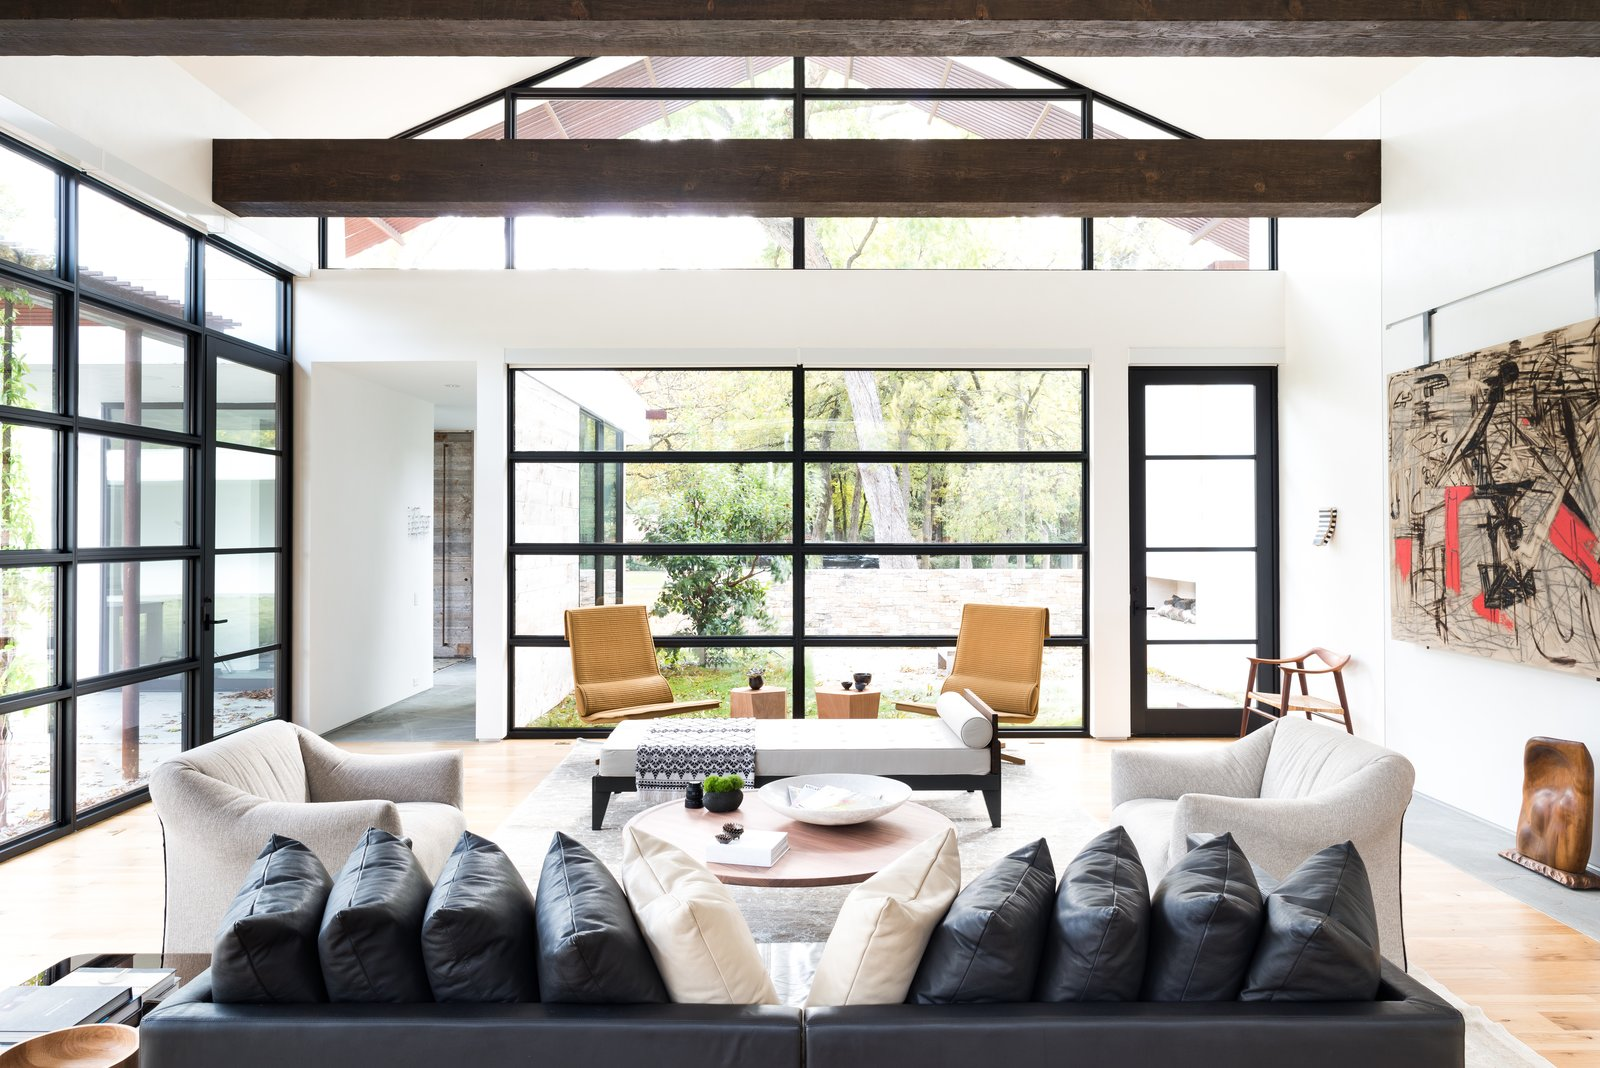 "For this project, the husband loved ultra-modern design, while the wife leaned towards a more traditional aesthetic. How to please both? ""Through the design process, we learned that their tastes were actually more closely aligned when we focused on the desired 'feel' of the home versus specific design details,"" Field says.  He and his colleagues balanced rustic, exposed ceiling beams with elegant venetian plaster walls, and artful aluminum storefront windows with functional white oak plank flooring.  Shining Examples of Clerestory Windows by Luke Hopping from Preston Hollow"